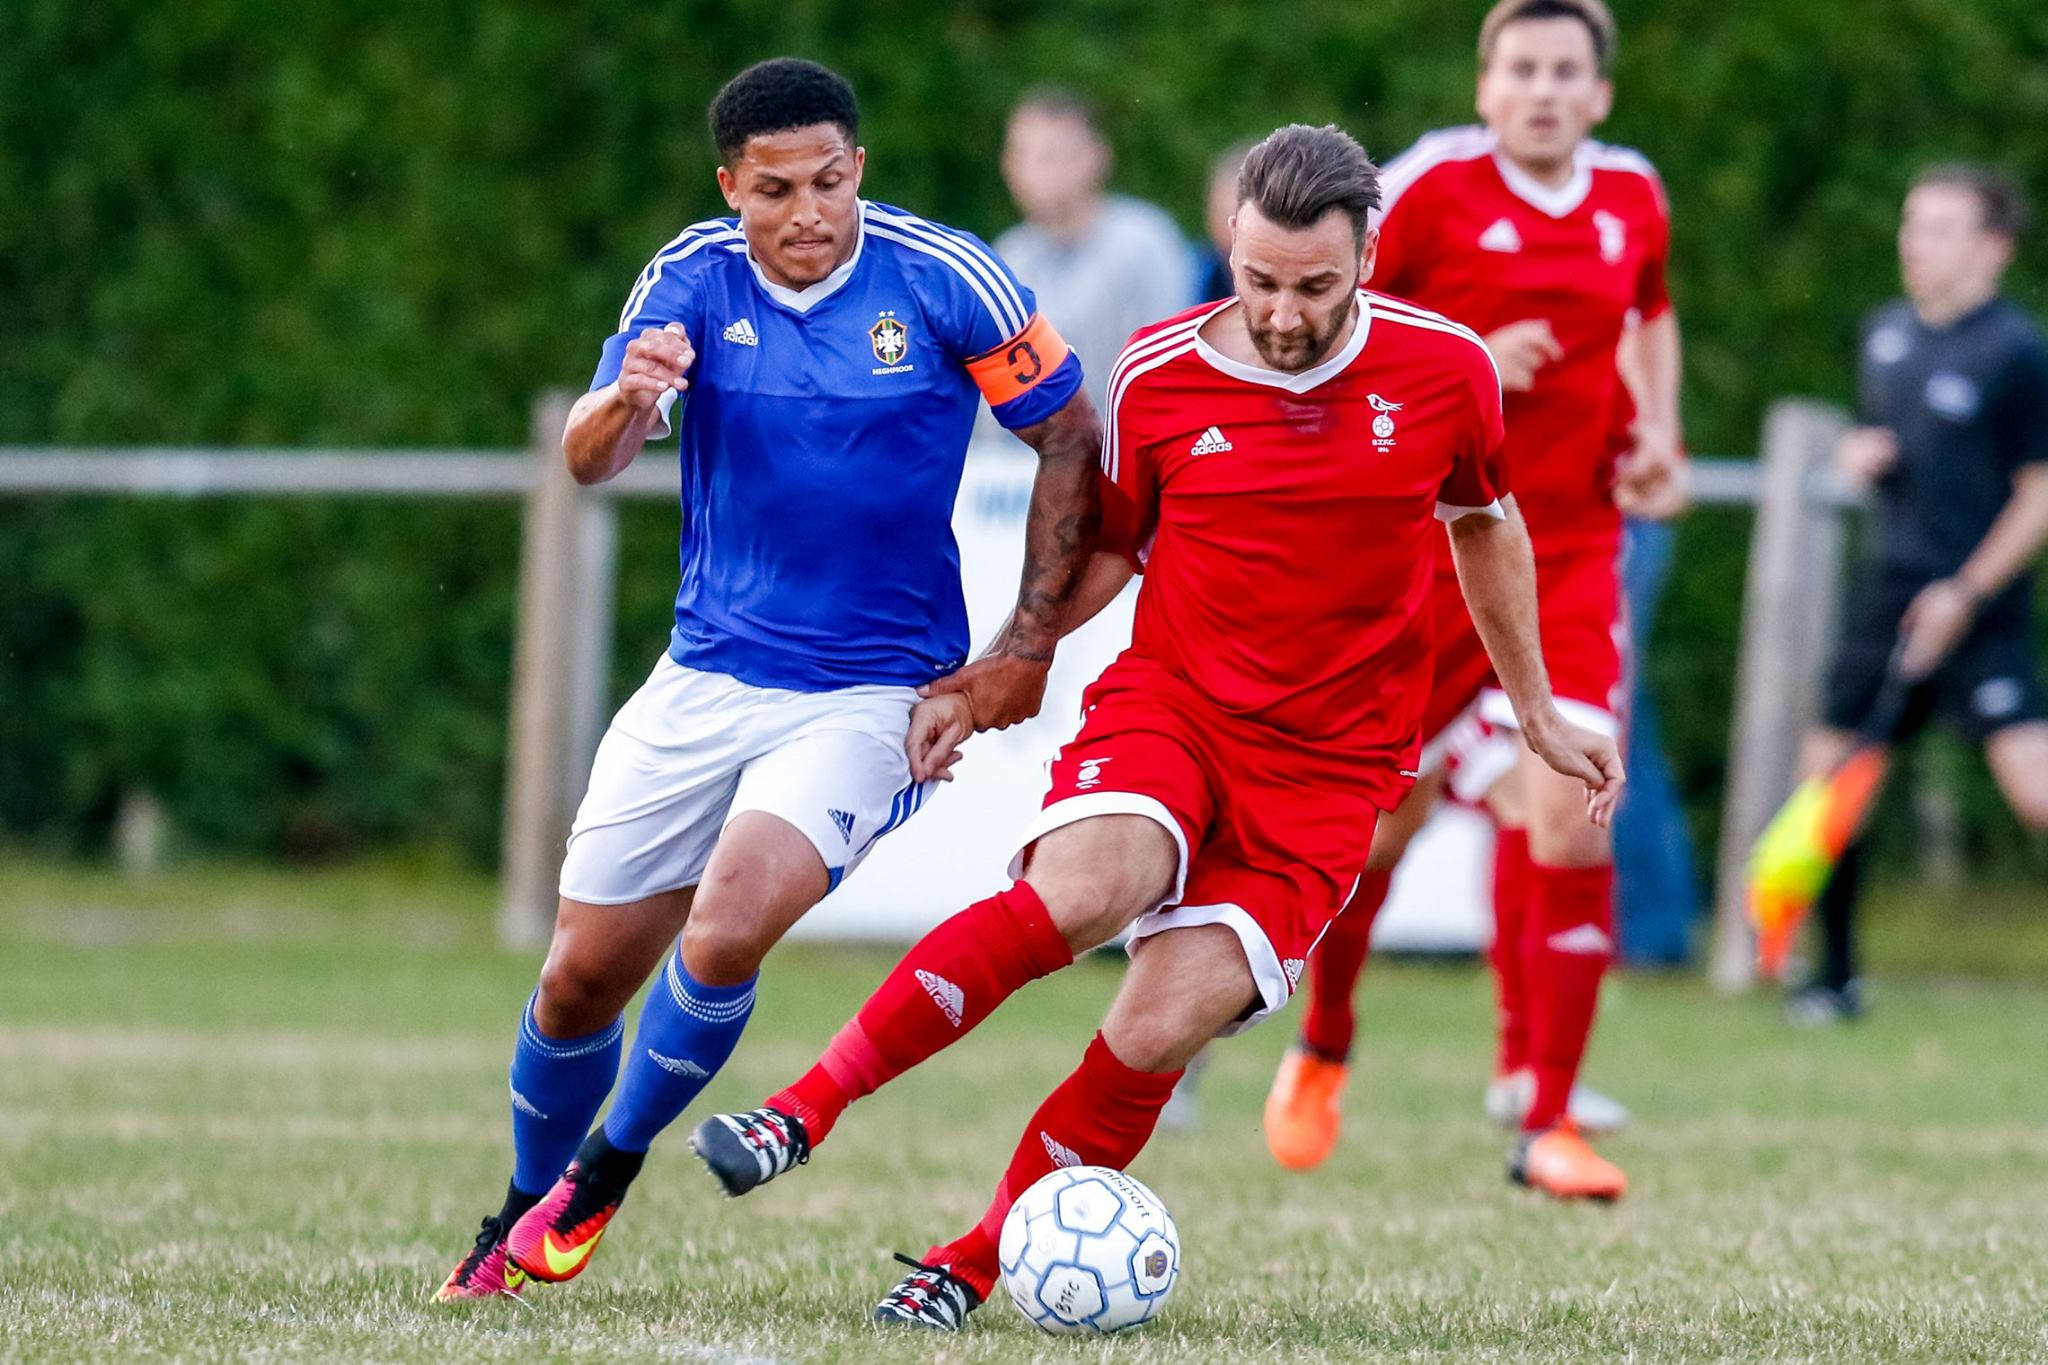 Hellenic Prem: Adam Cornell gets Bracknell Town FC back on track